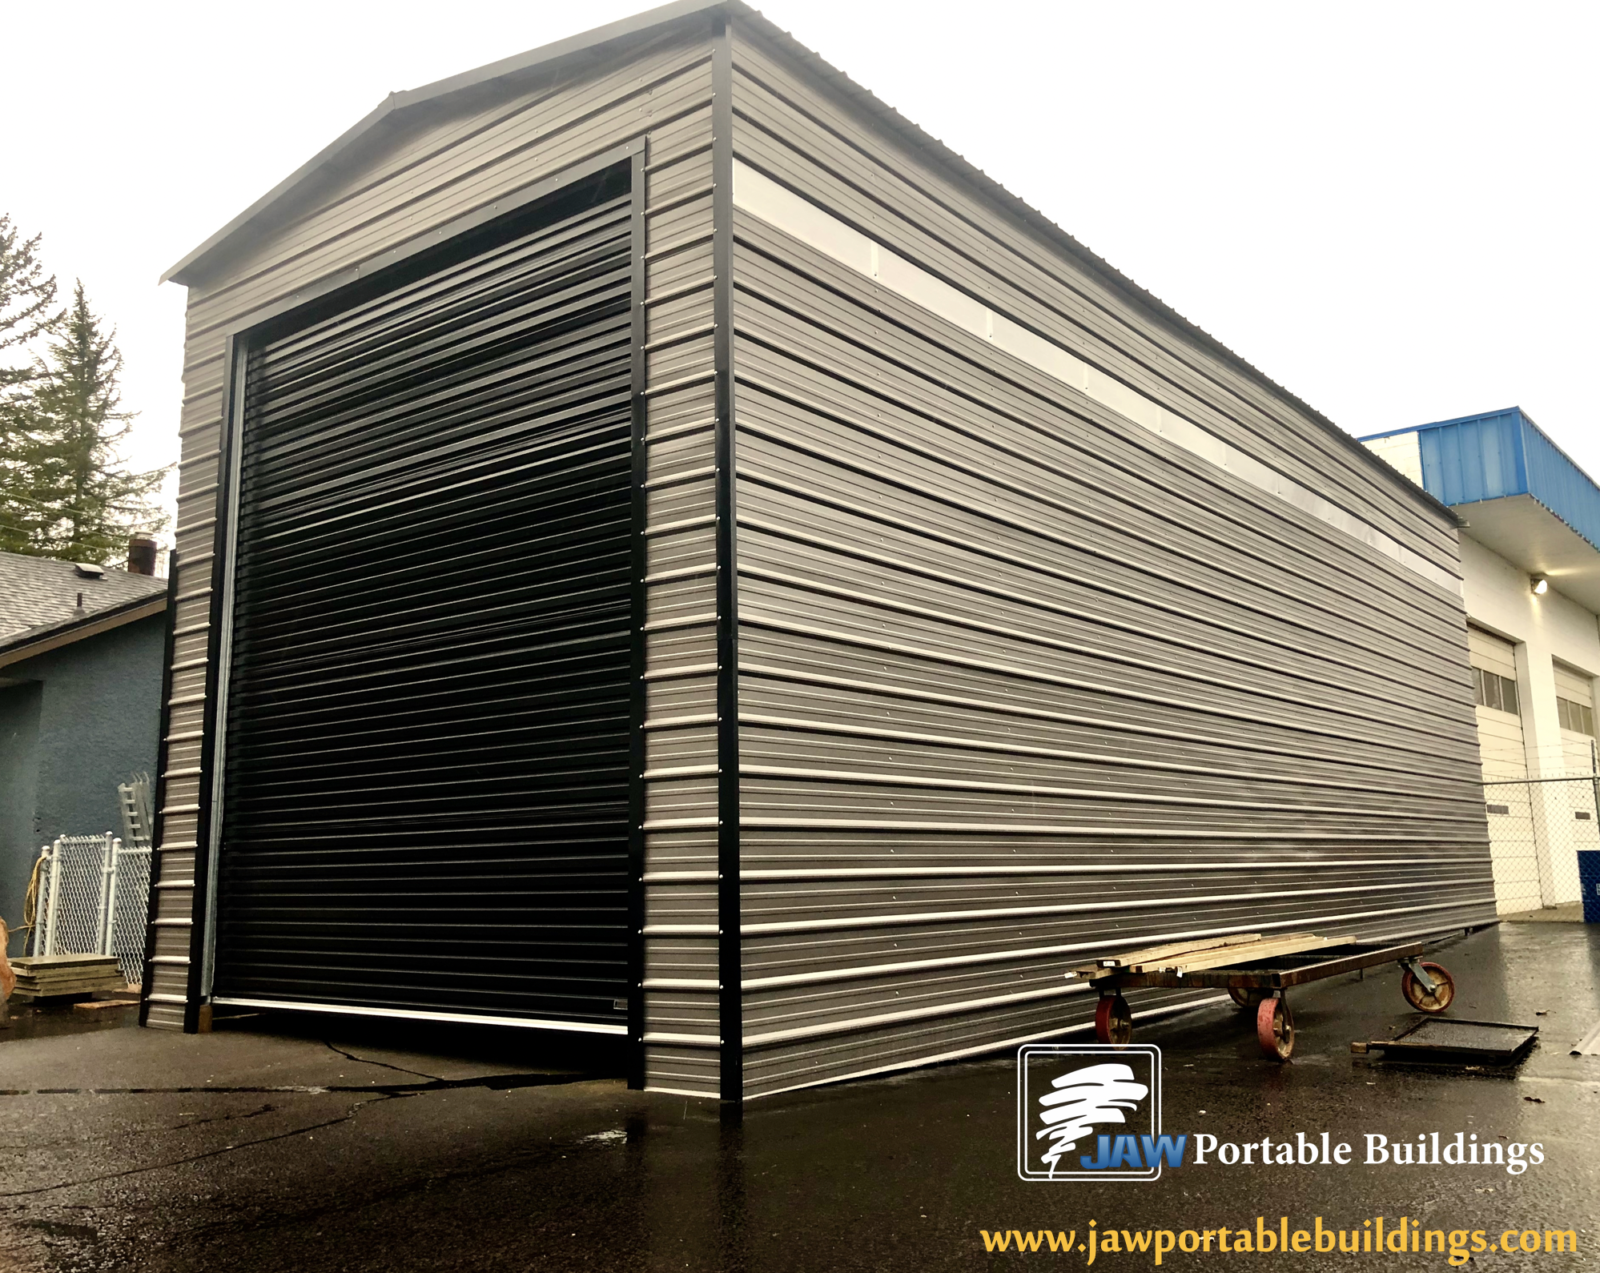 Modern Metal Carports Garages - JAW Portable Buildings